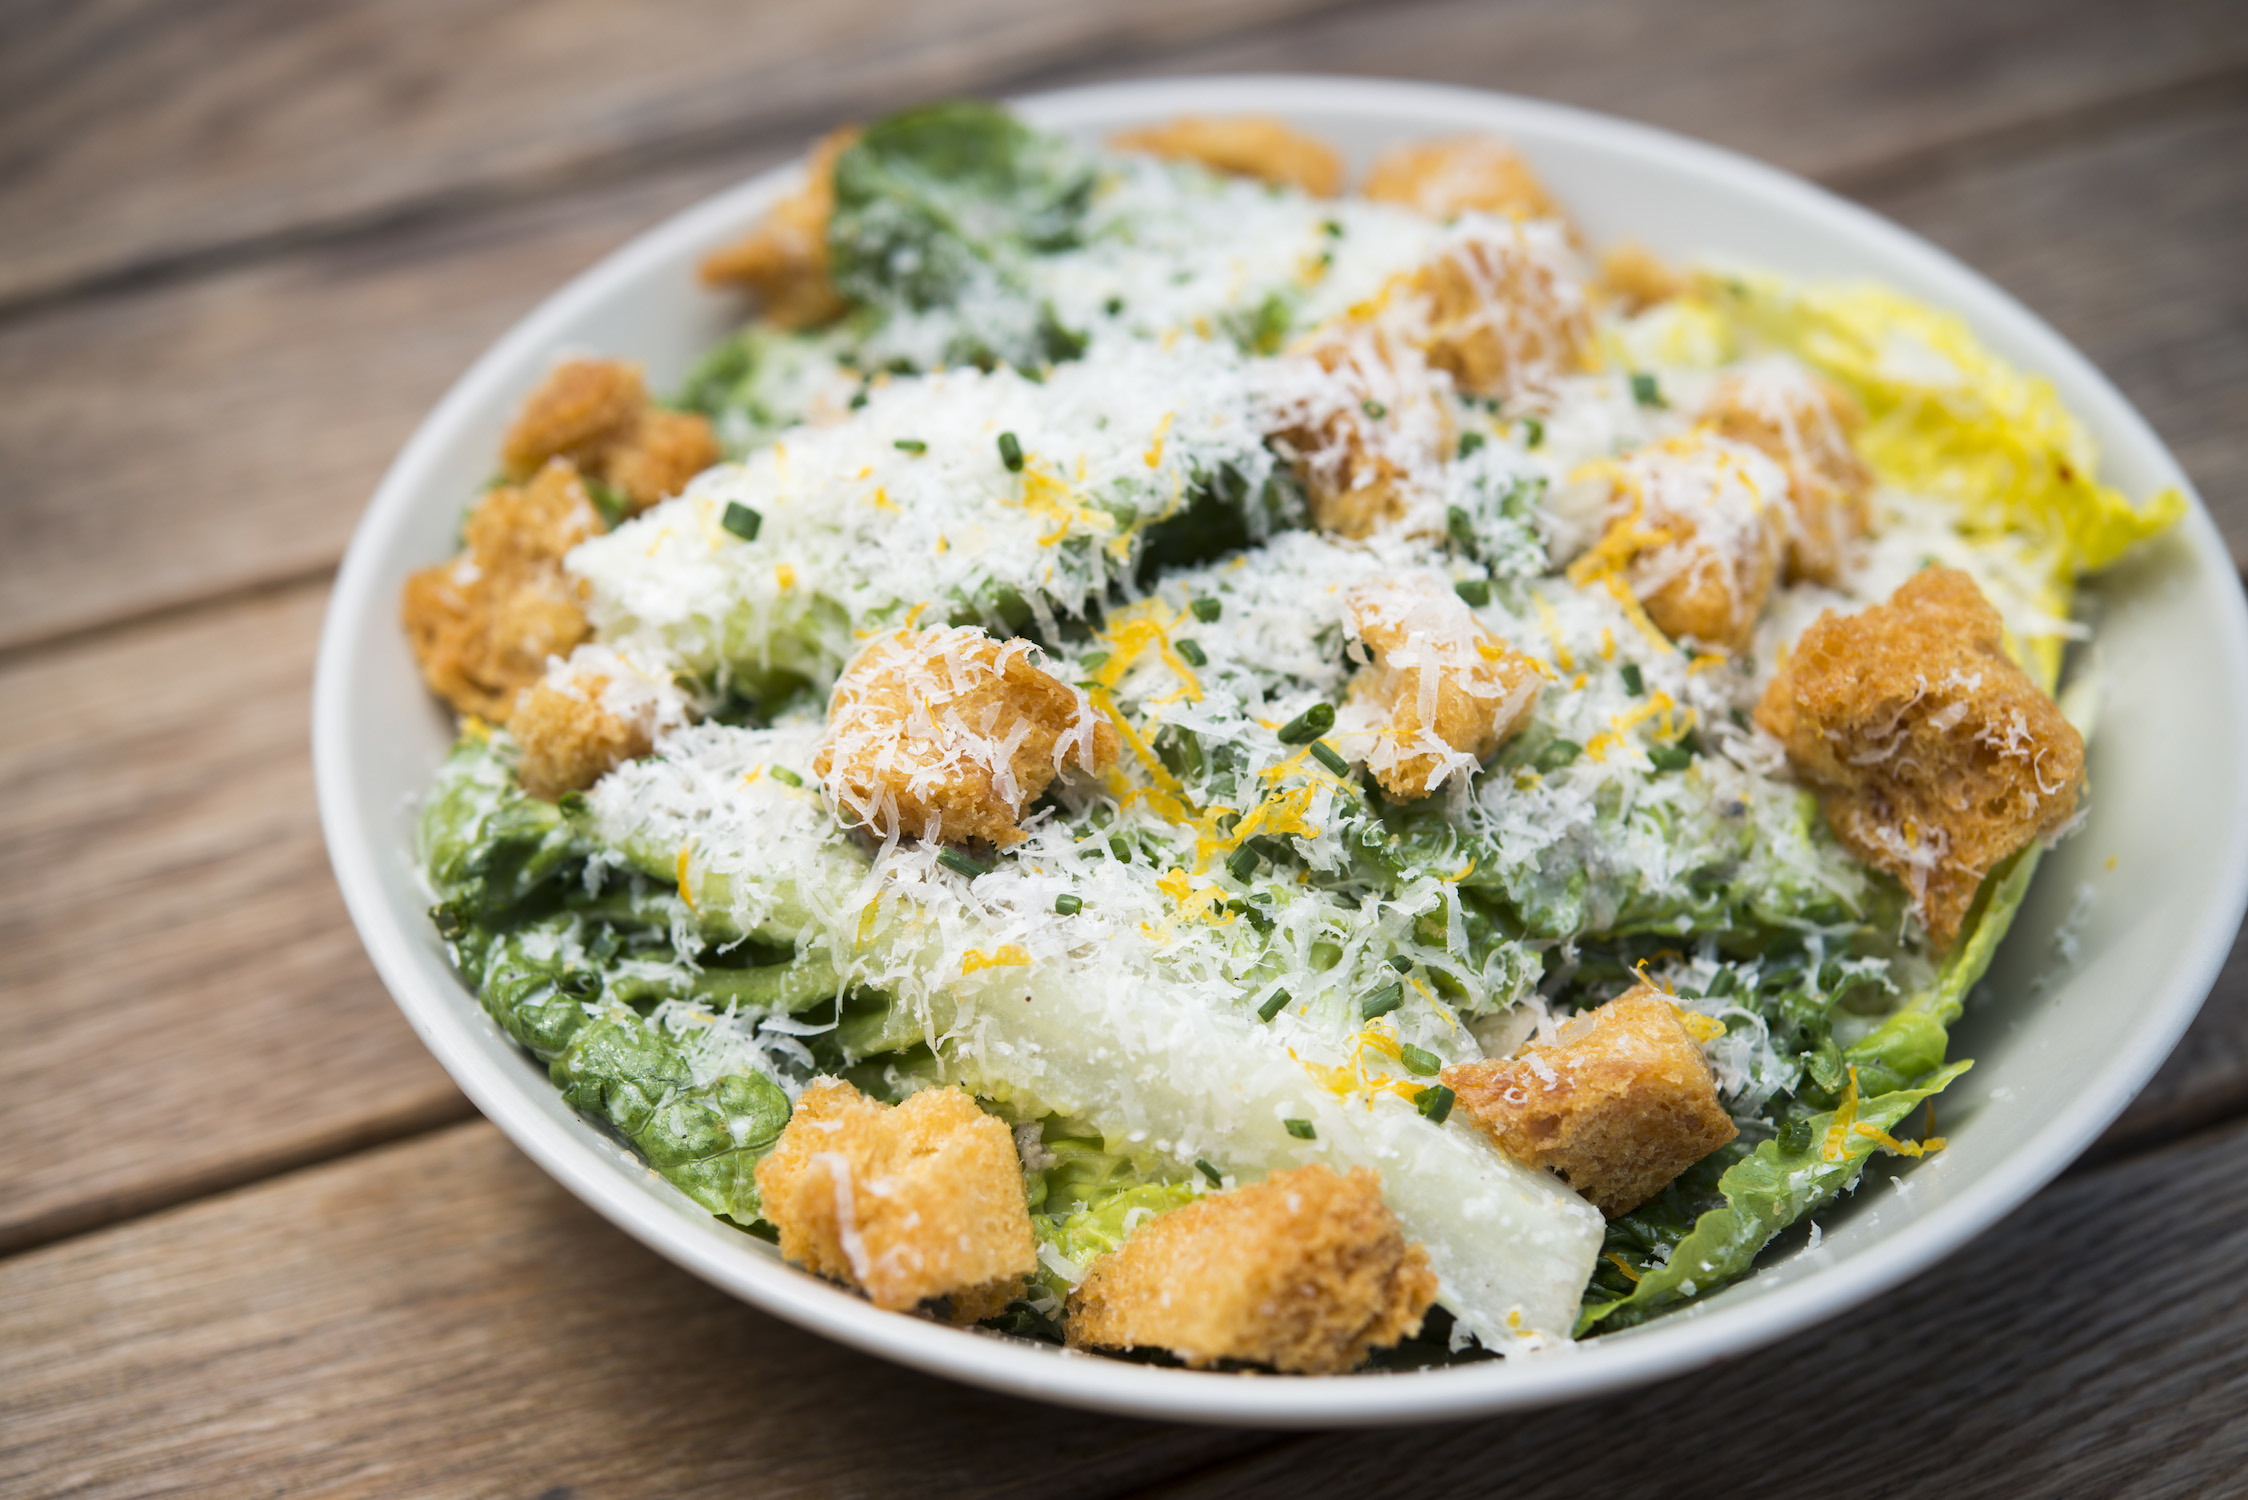 Lunch - Caesar Salad